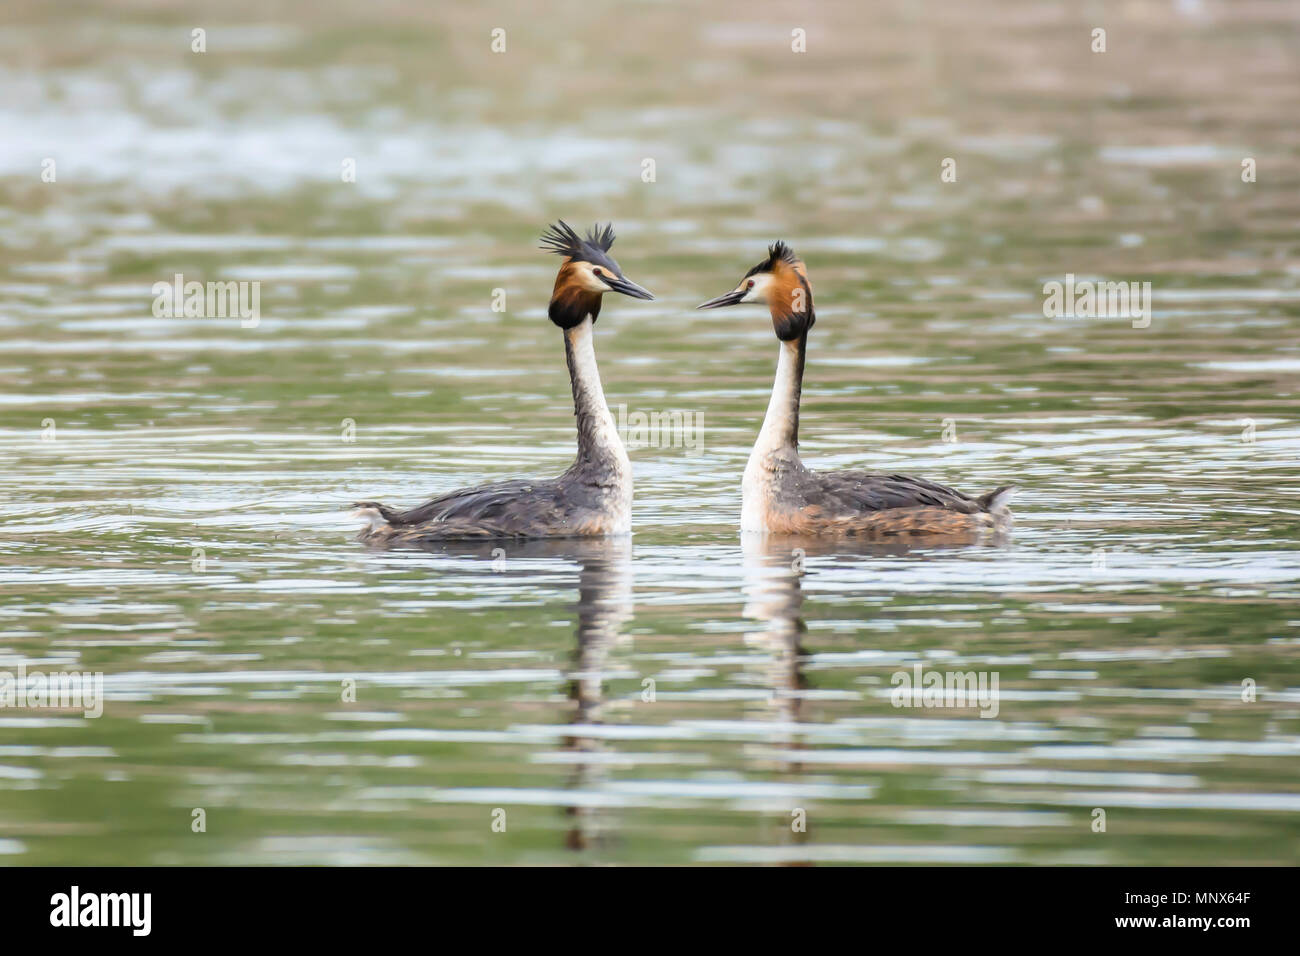 Pair of great crested grebes during mating season floating on lake surface and looking at each other.Stunning british wildlife,nature uk.Natural world - Stock Image